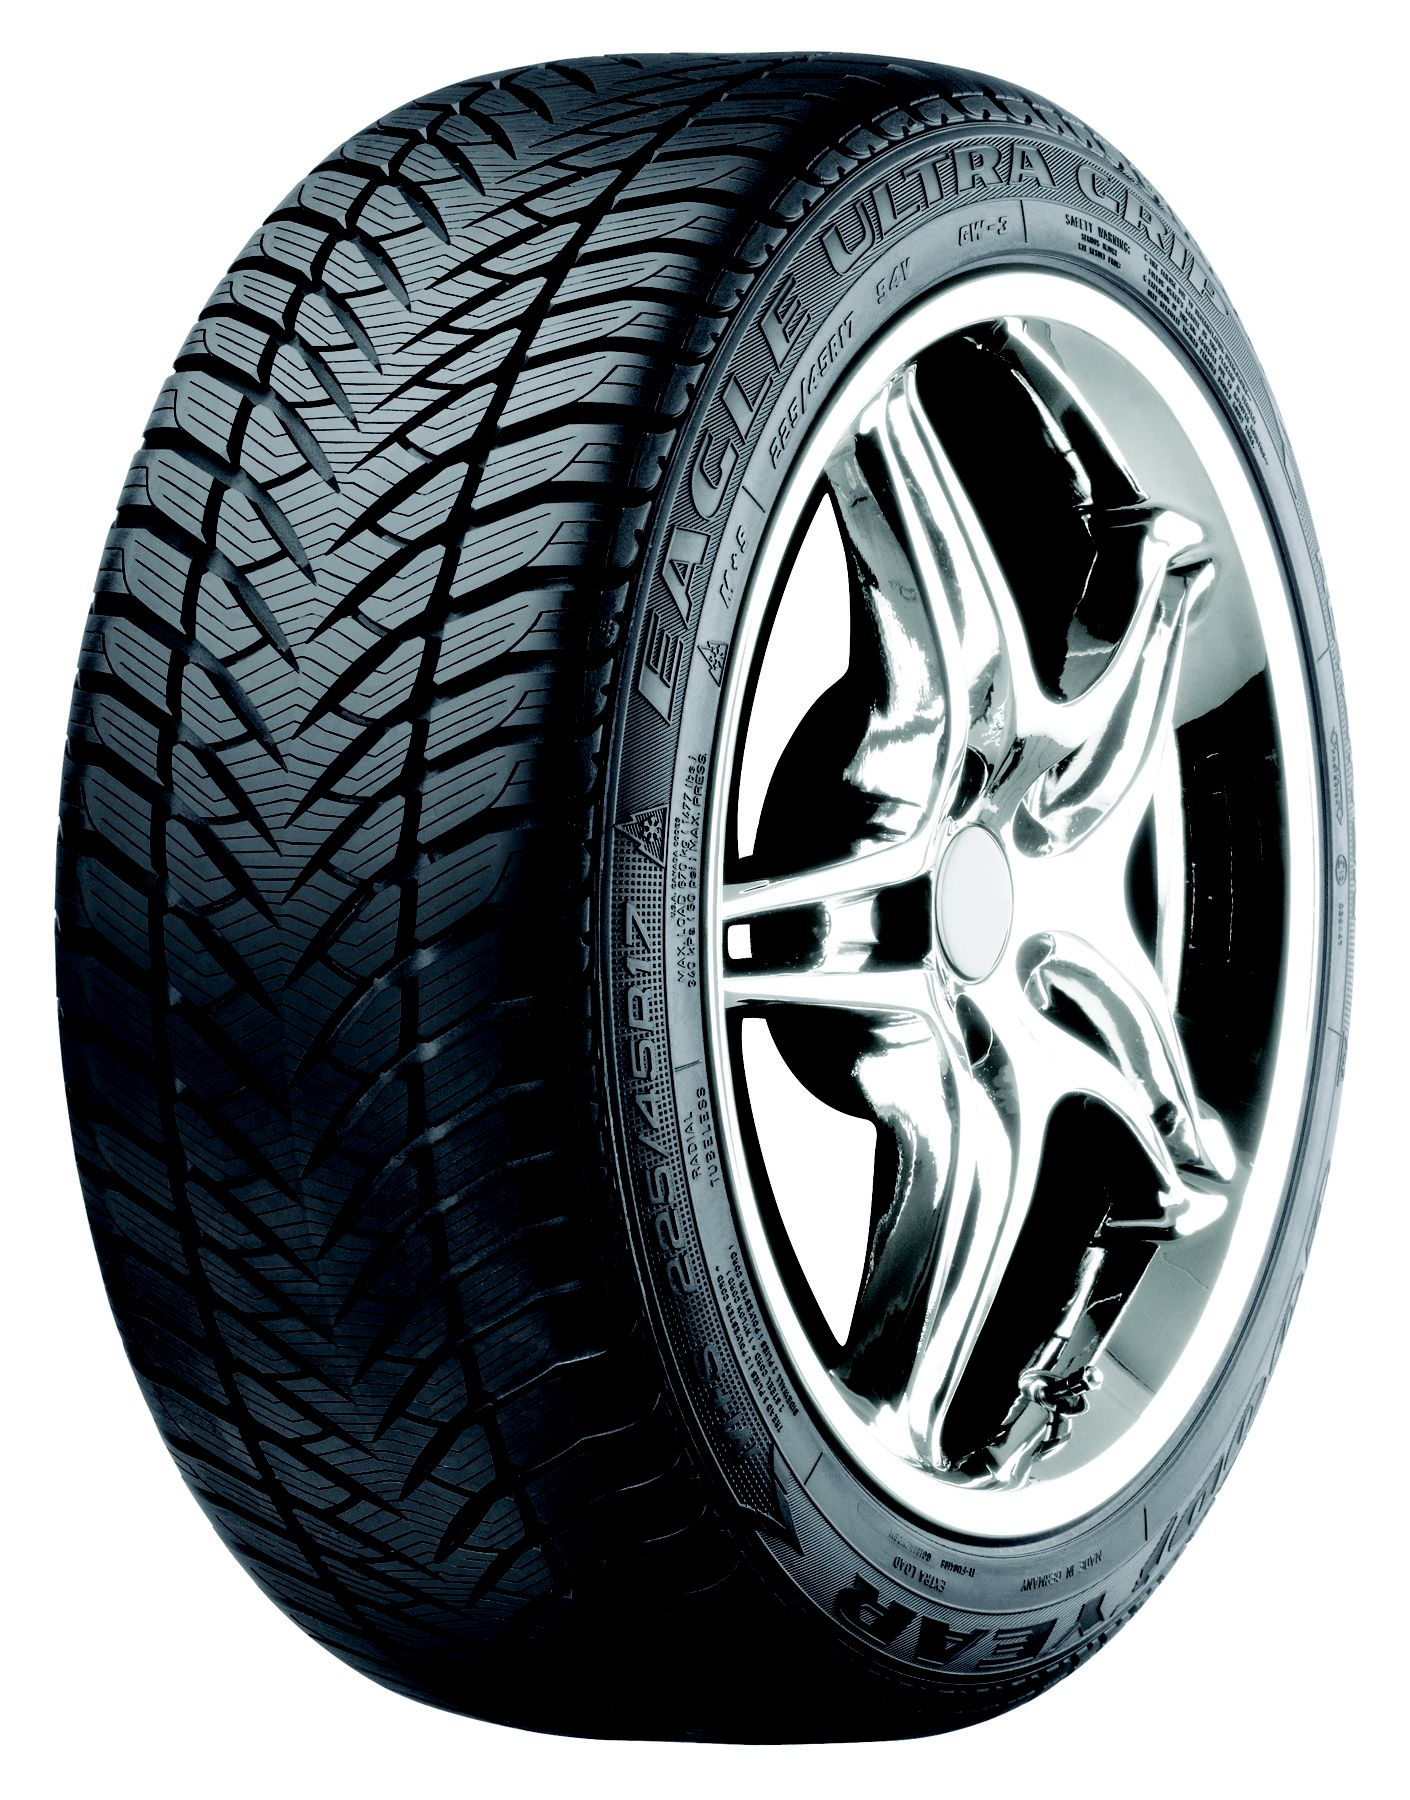 Eagle Ultra Grip GW-3 - 205/50R17 89H BW - Winter Tire